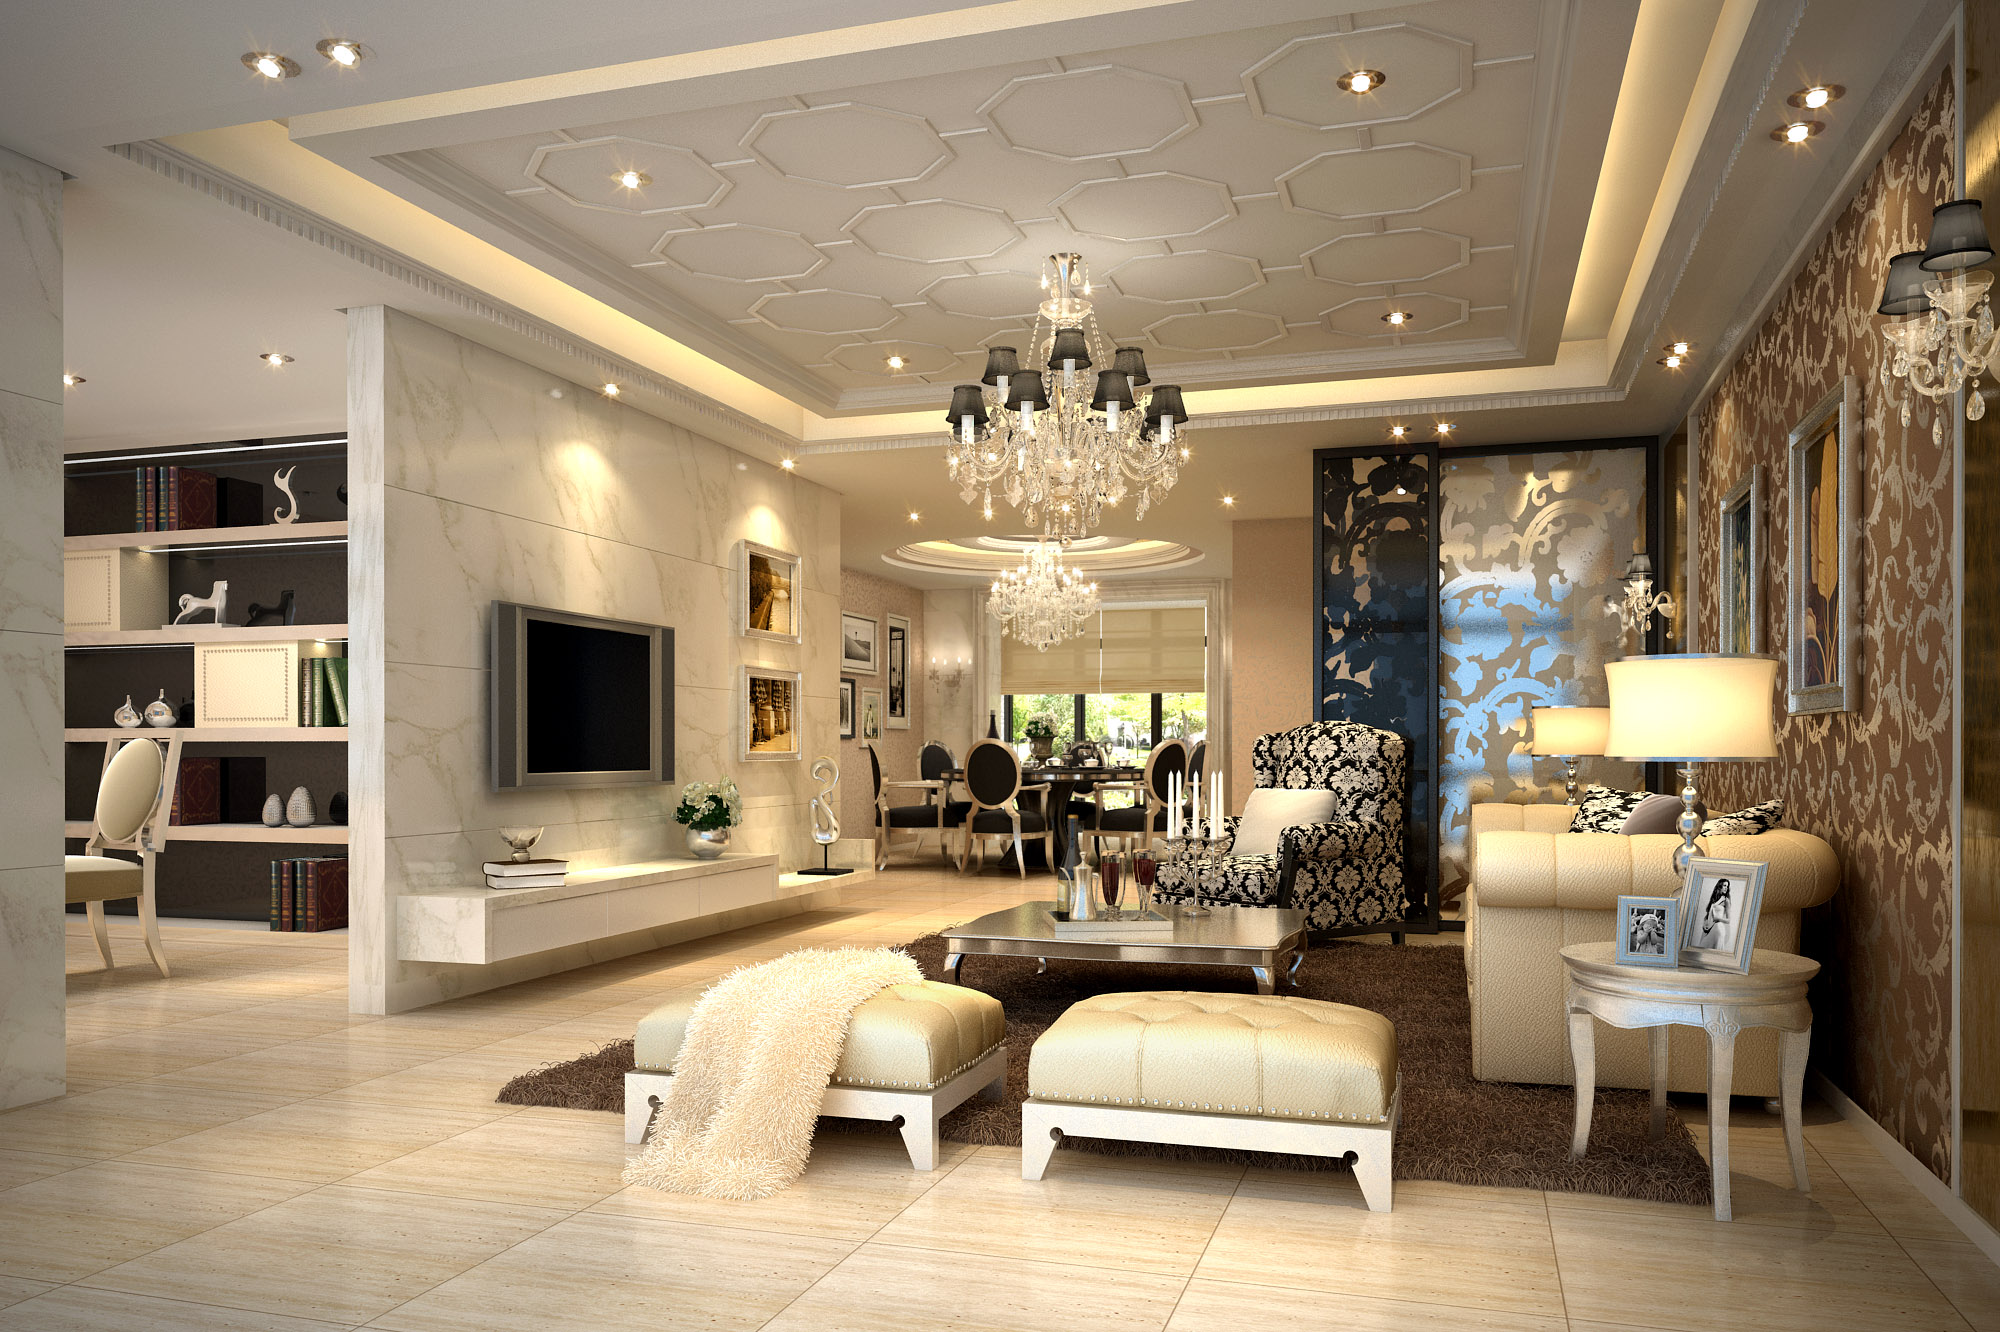 Ceiling Interior Design Small House